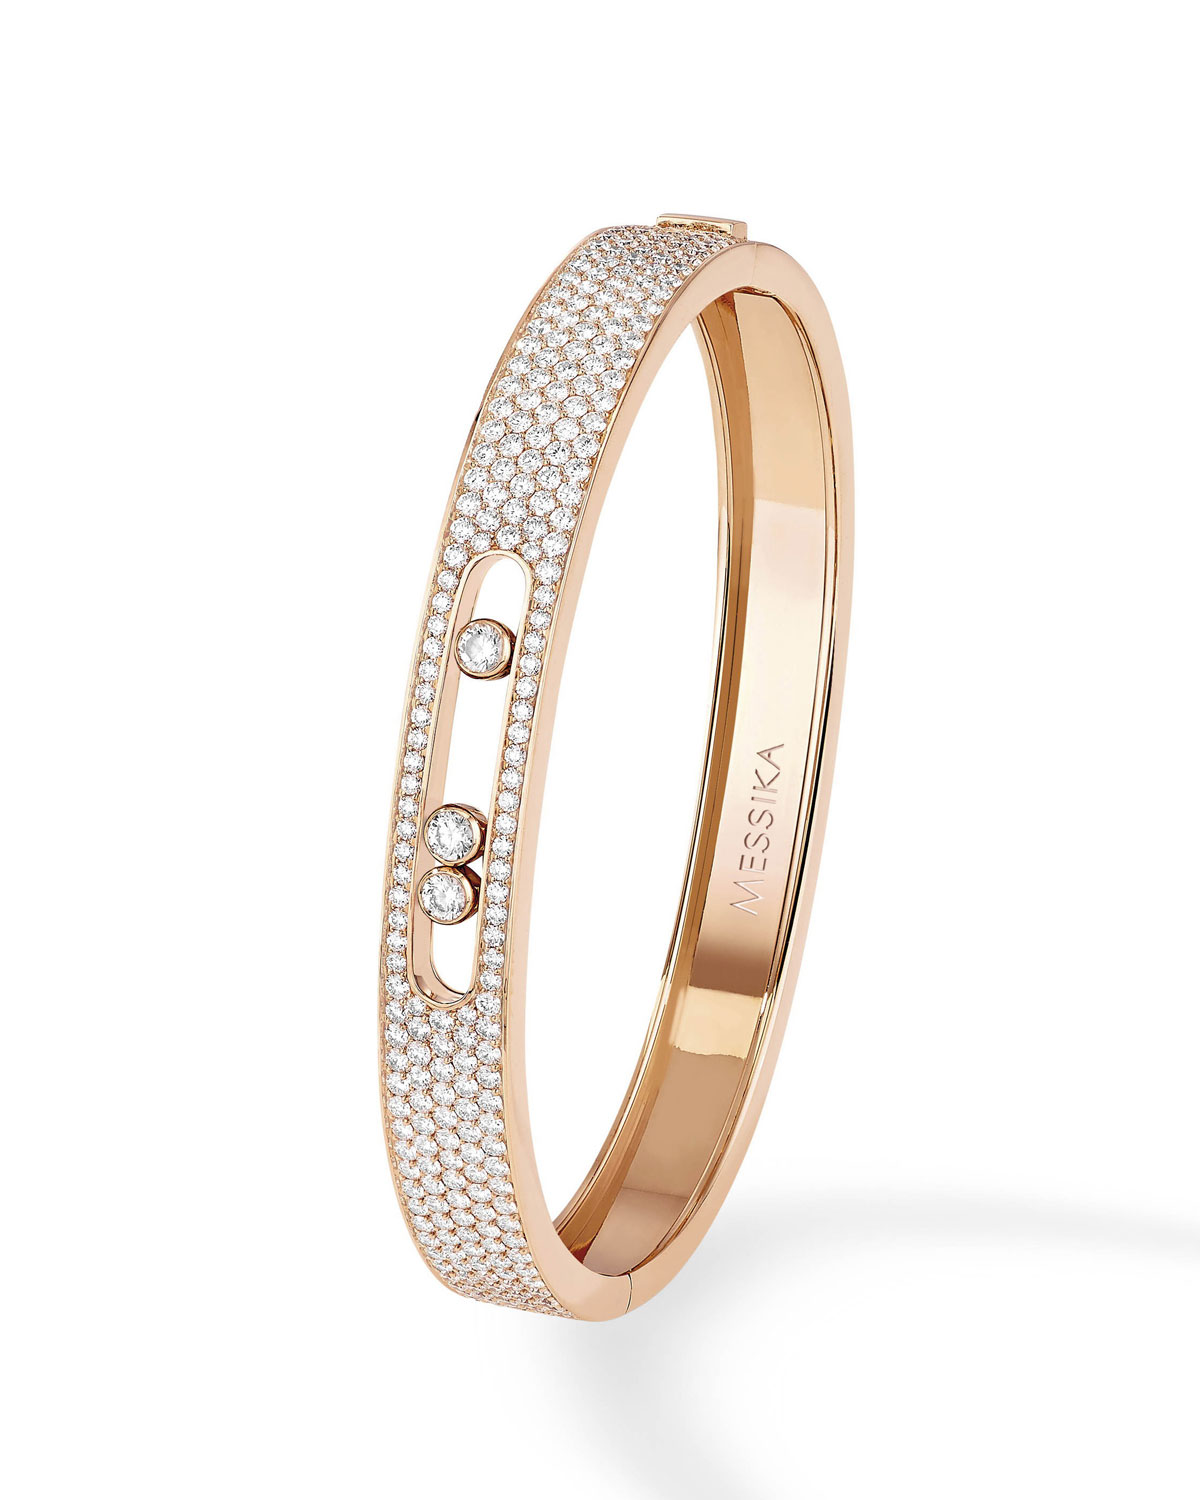 Messika MOVE DIAMOND BANGLE IN 18K ROSE GOLD